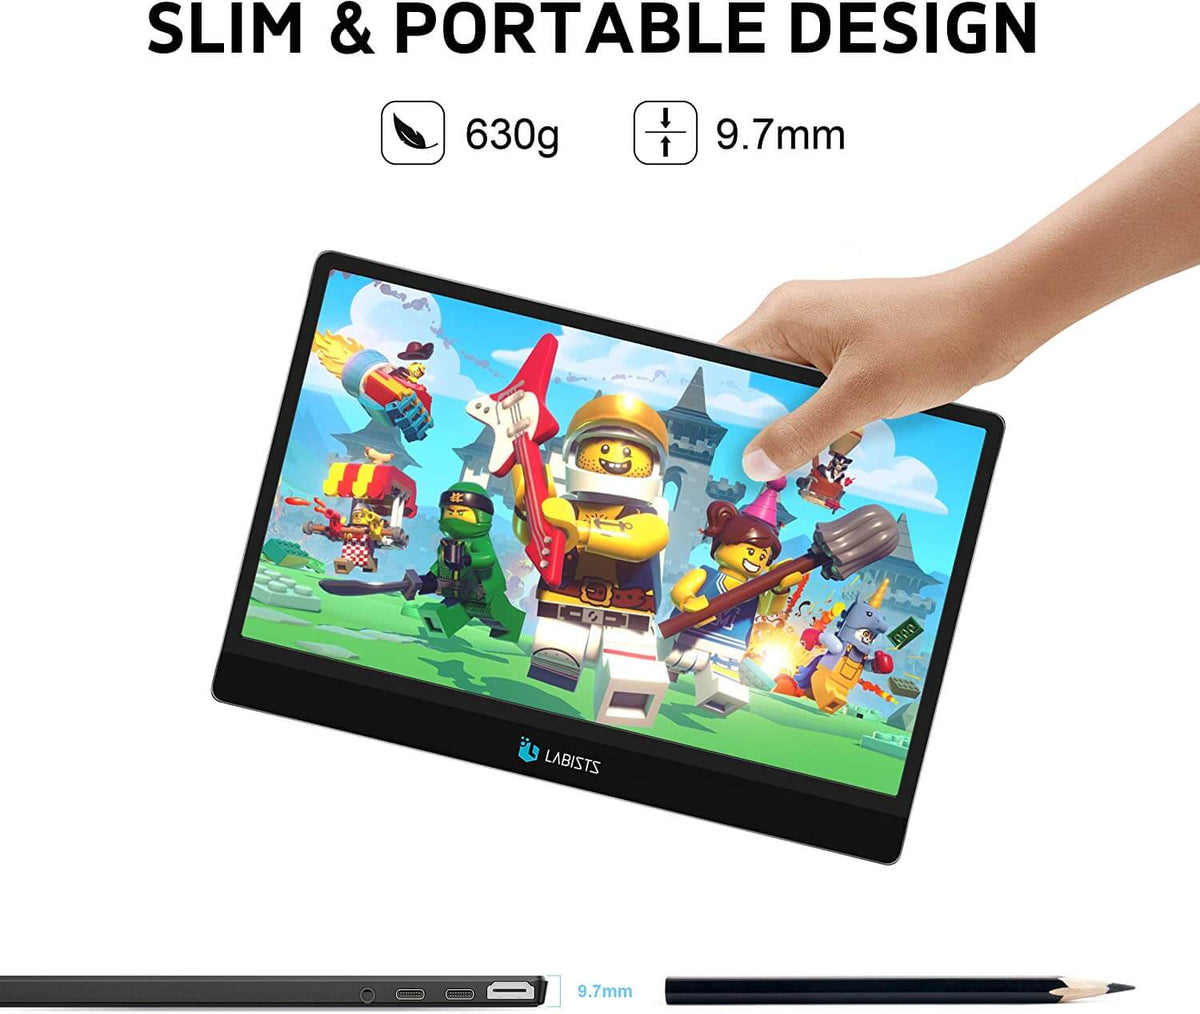 SLIM&PORTABLE DESIGN